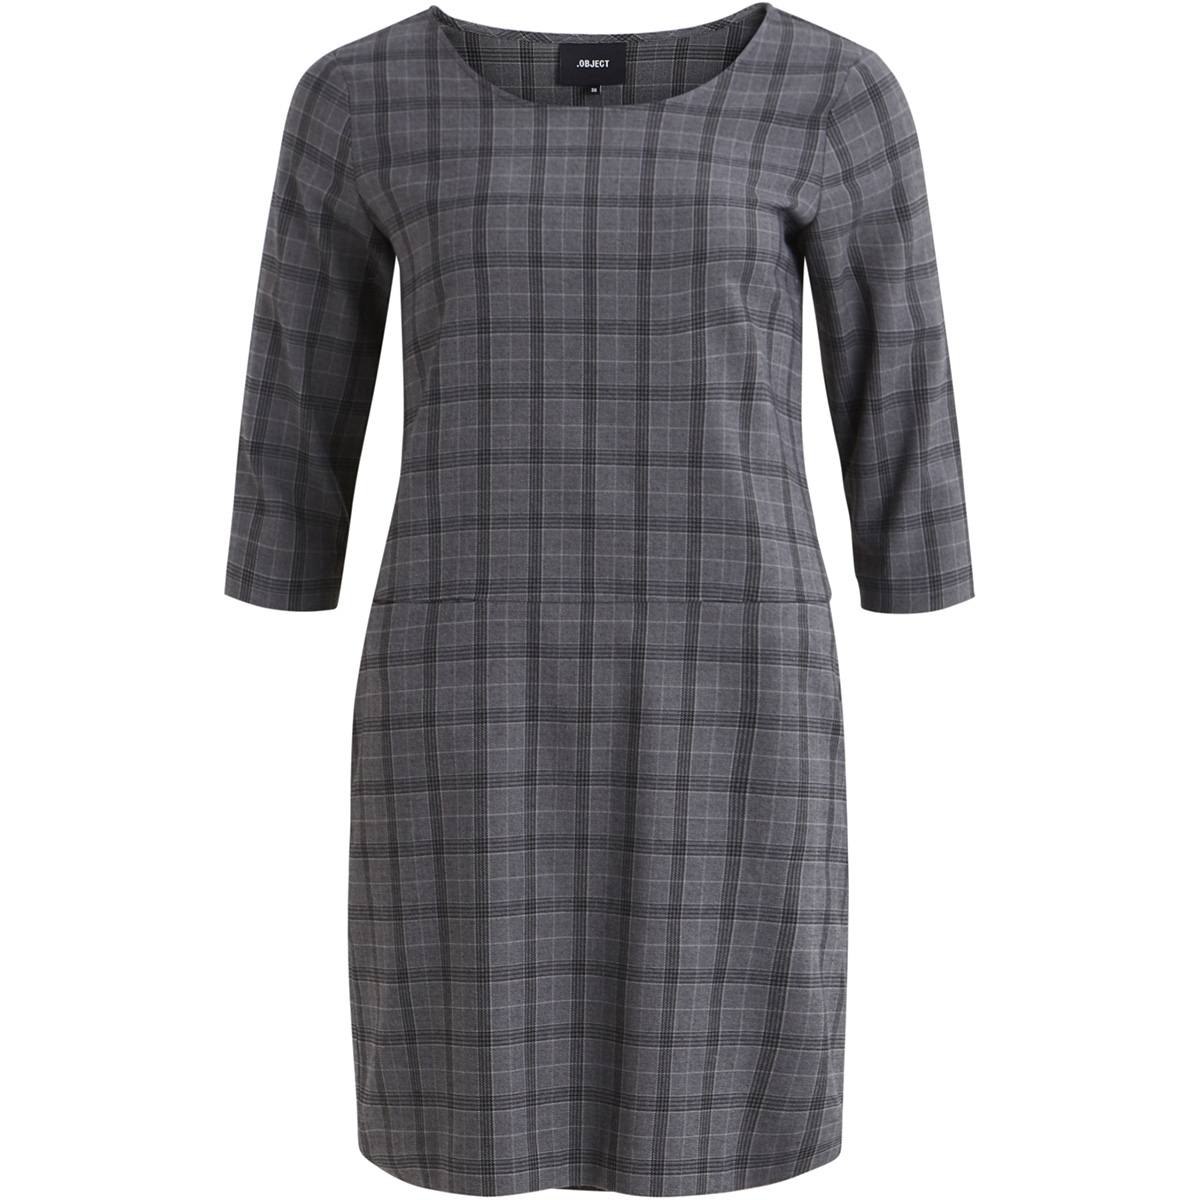 objredhot maxine bell dress a rt 23029150 object jurk medium grey